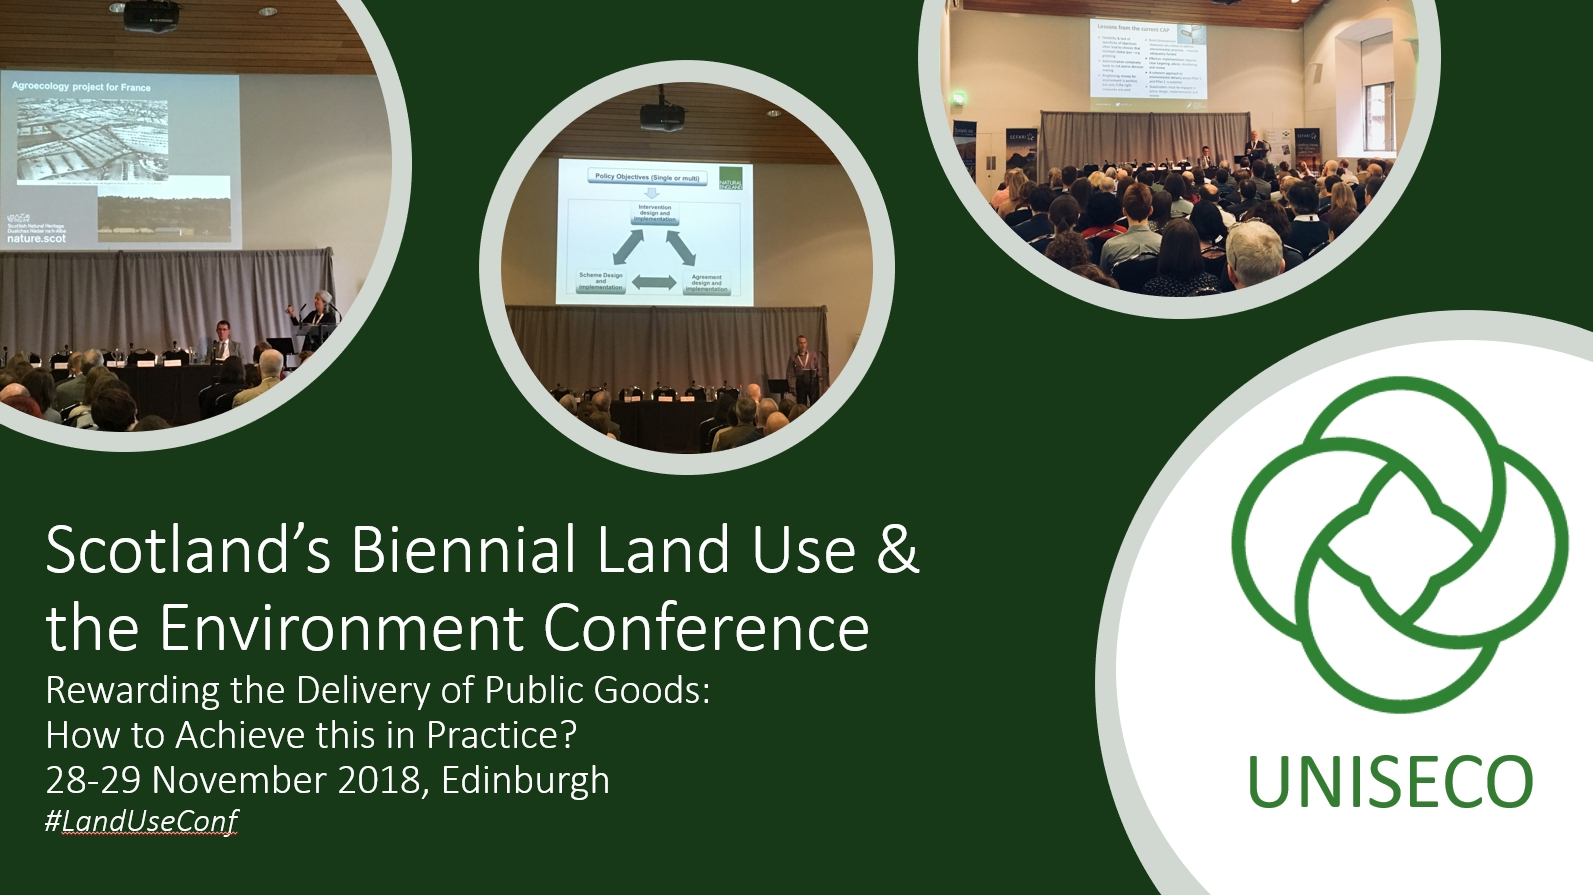 UNISECO presented at Scotland's Biennial Land Use & the Environment Conference